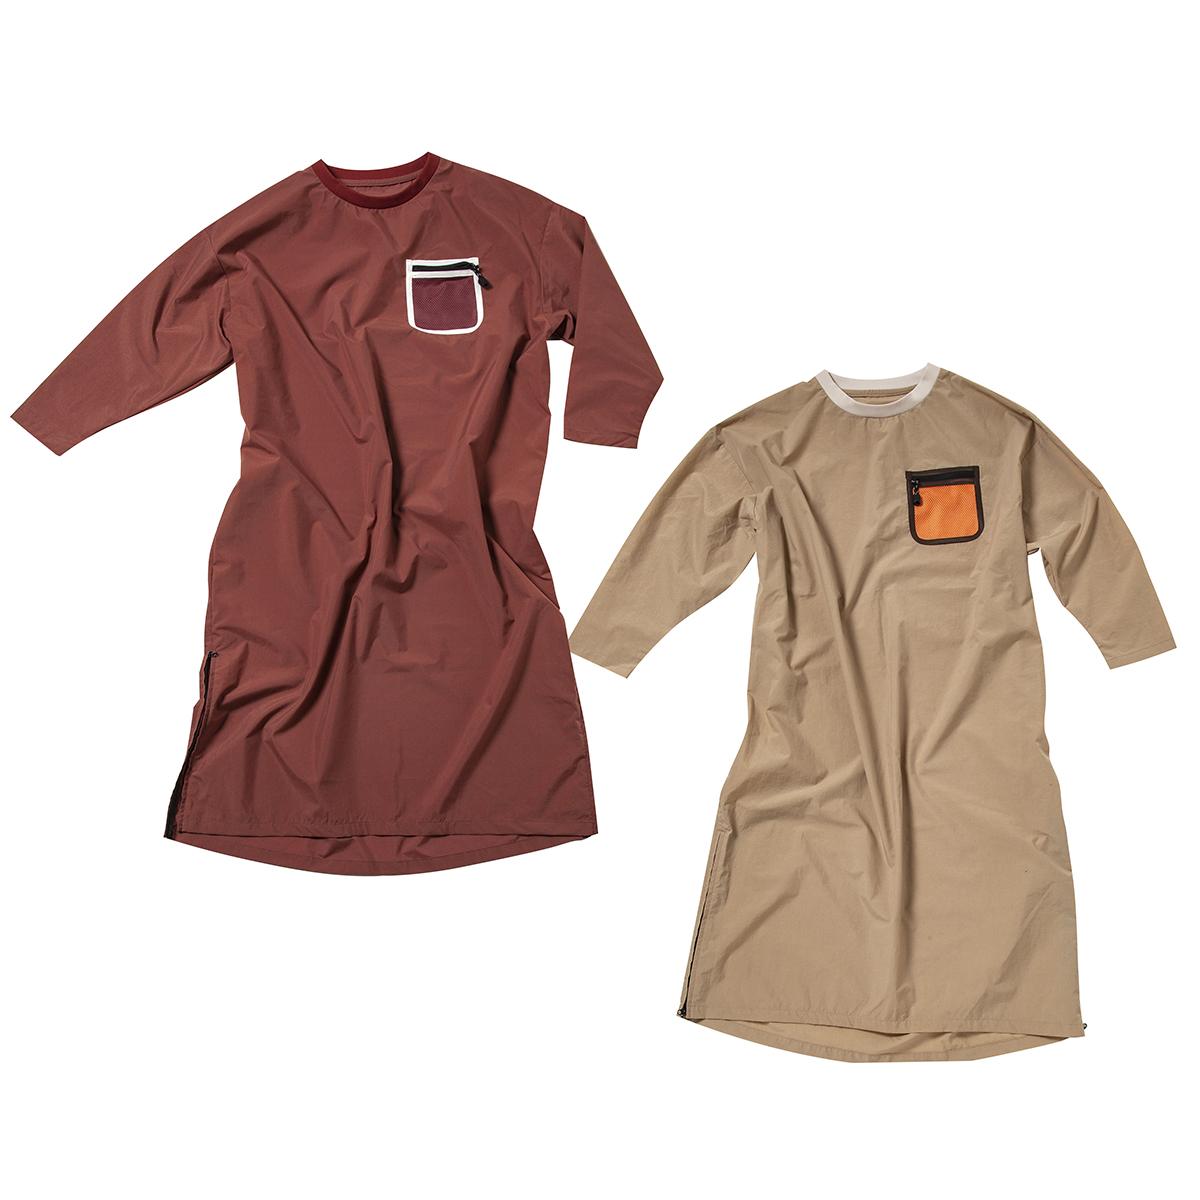 AWESOME ONEPIE オーサムワンピ(WOMEN) Number : s20-so-w03 Fabric : Nylon 100% Size:FREE Color:Old Rose, Beige Price : ¥11,800